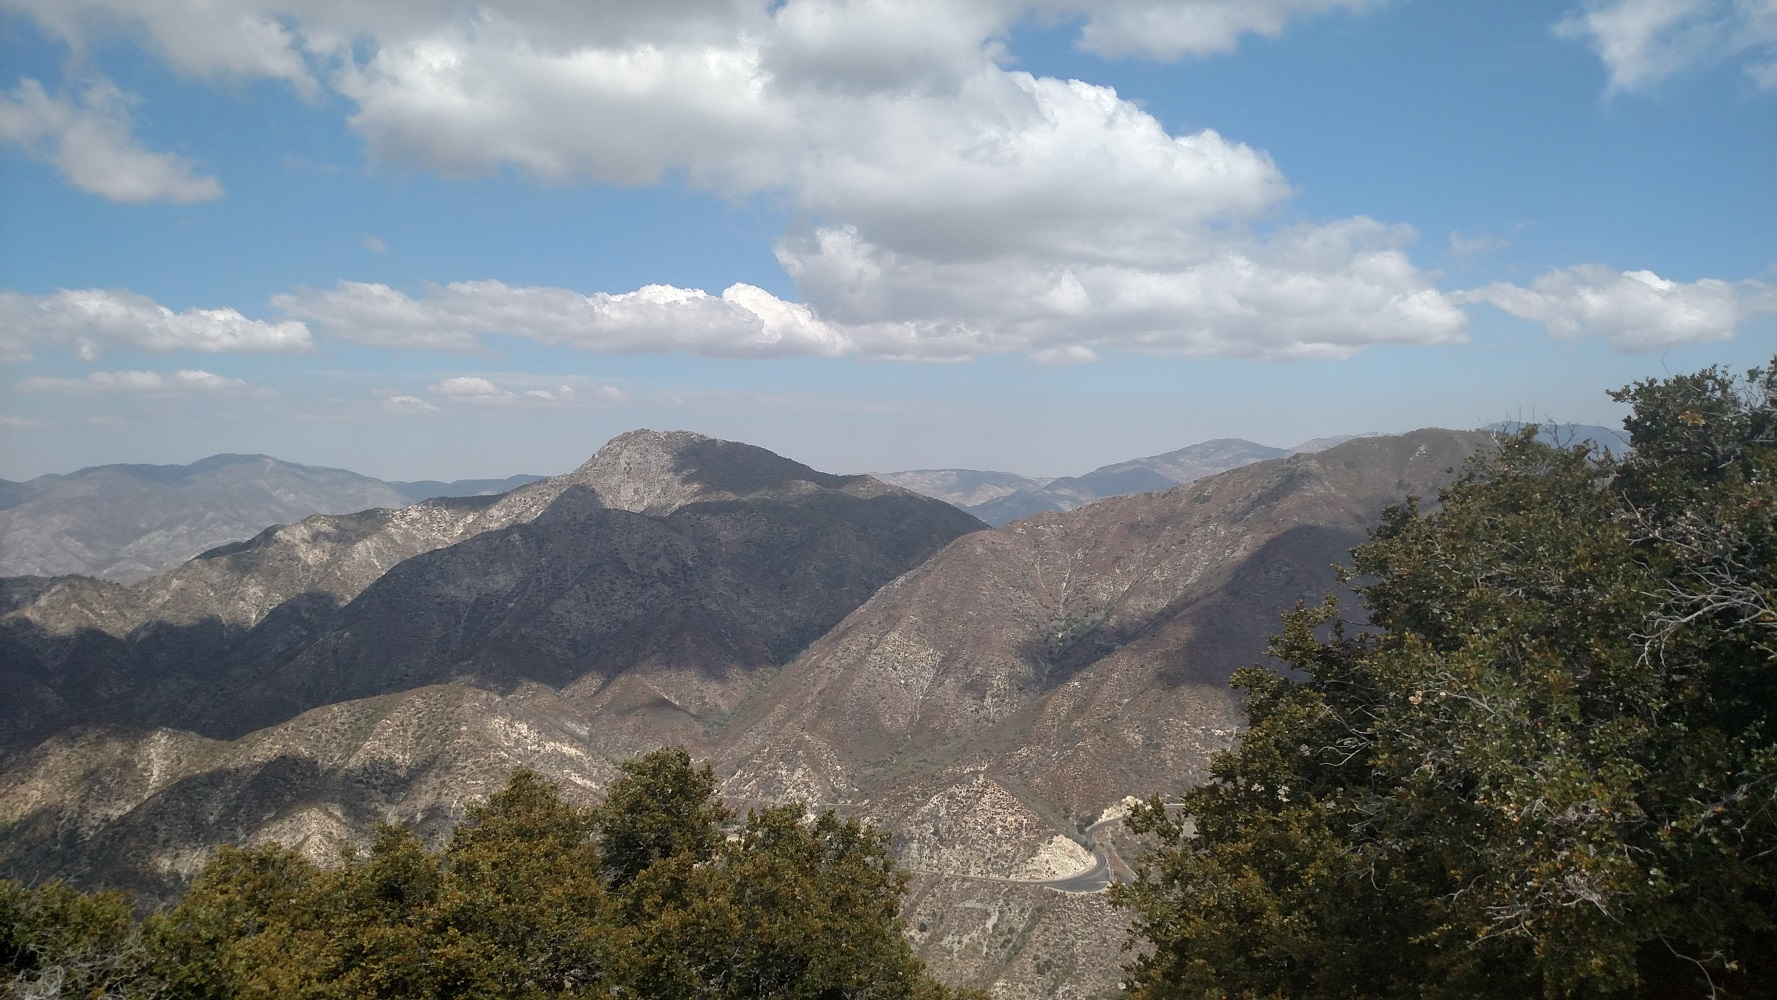 Strawberry Peak as seen from Mt. Deception, Angeles National Forest